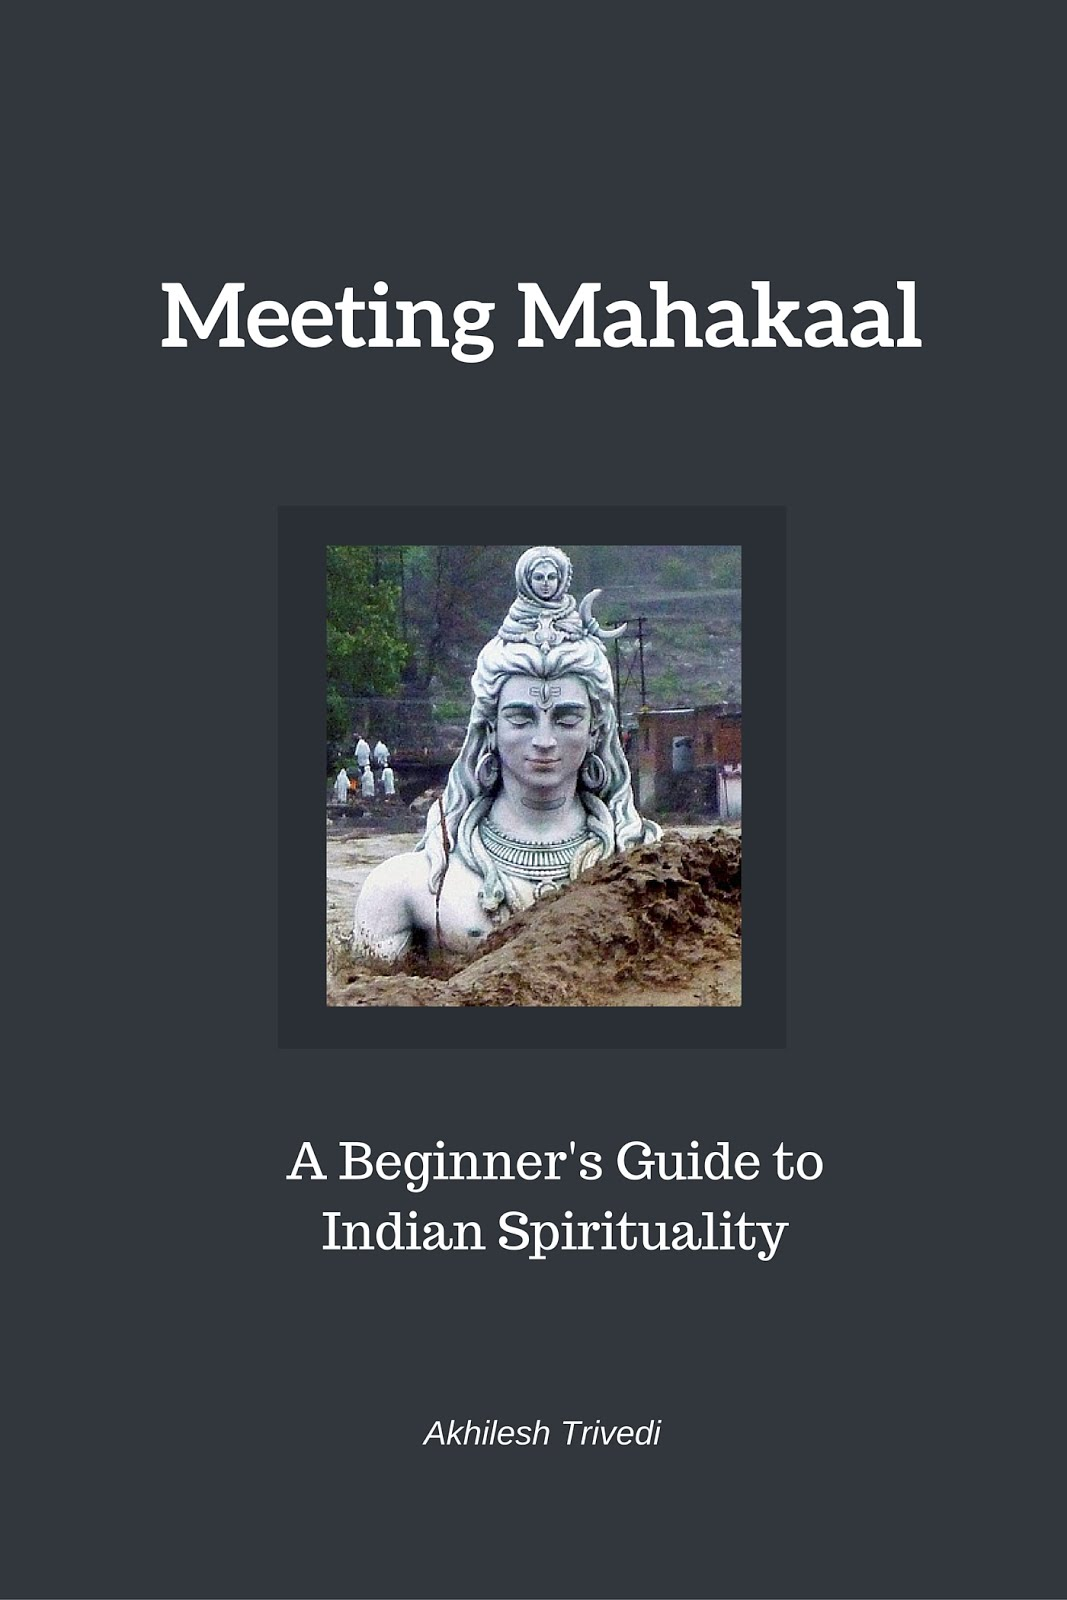 Meeting Mahakaal